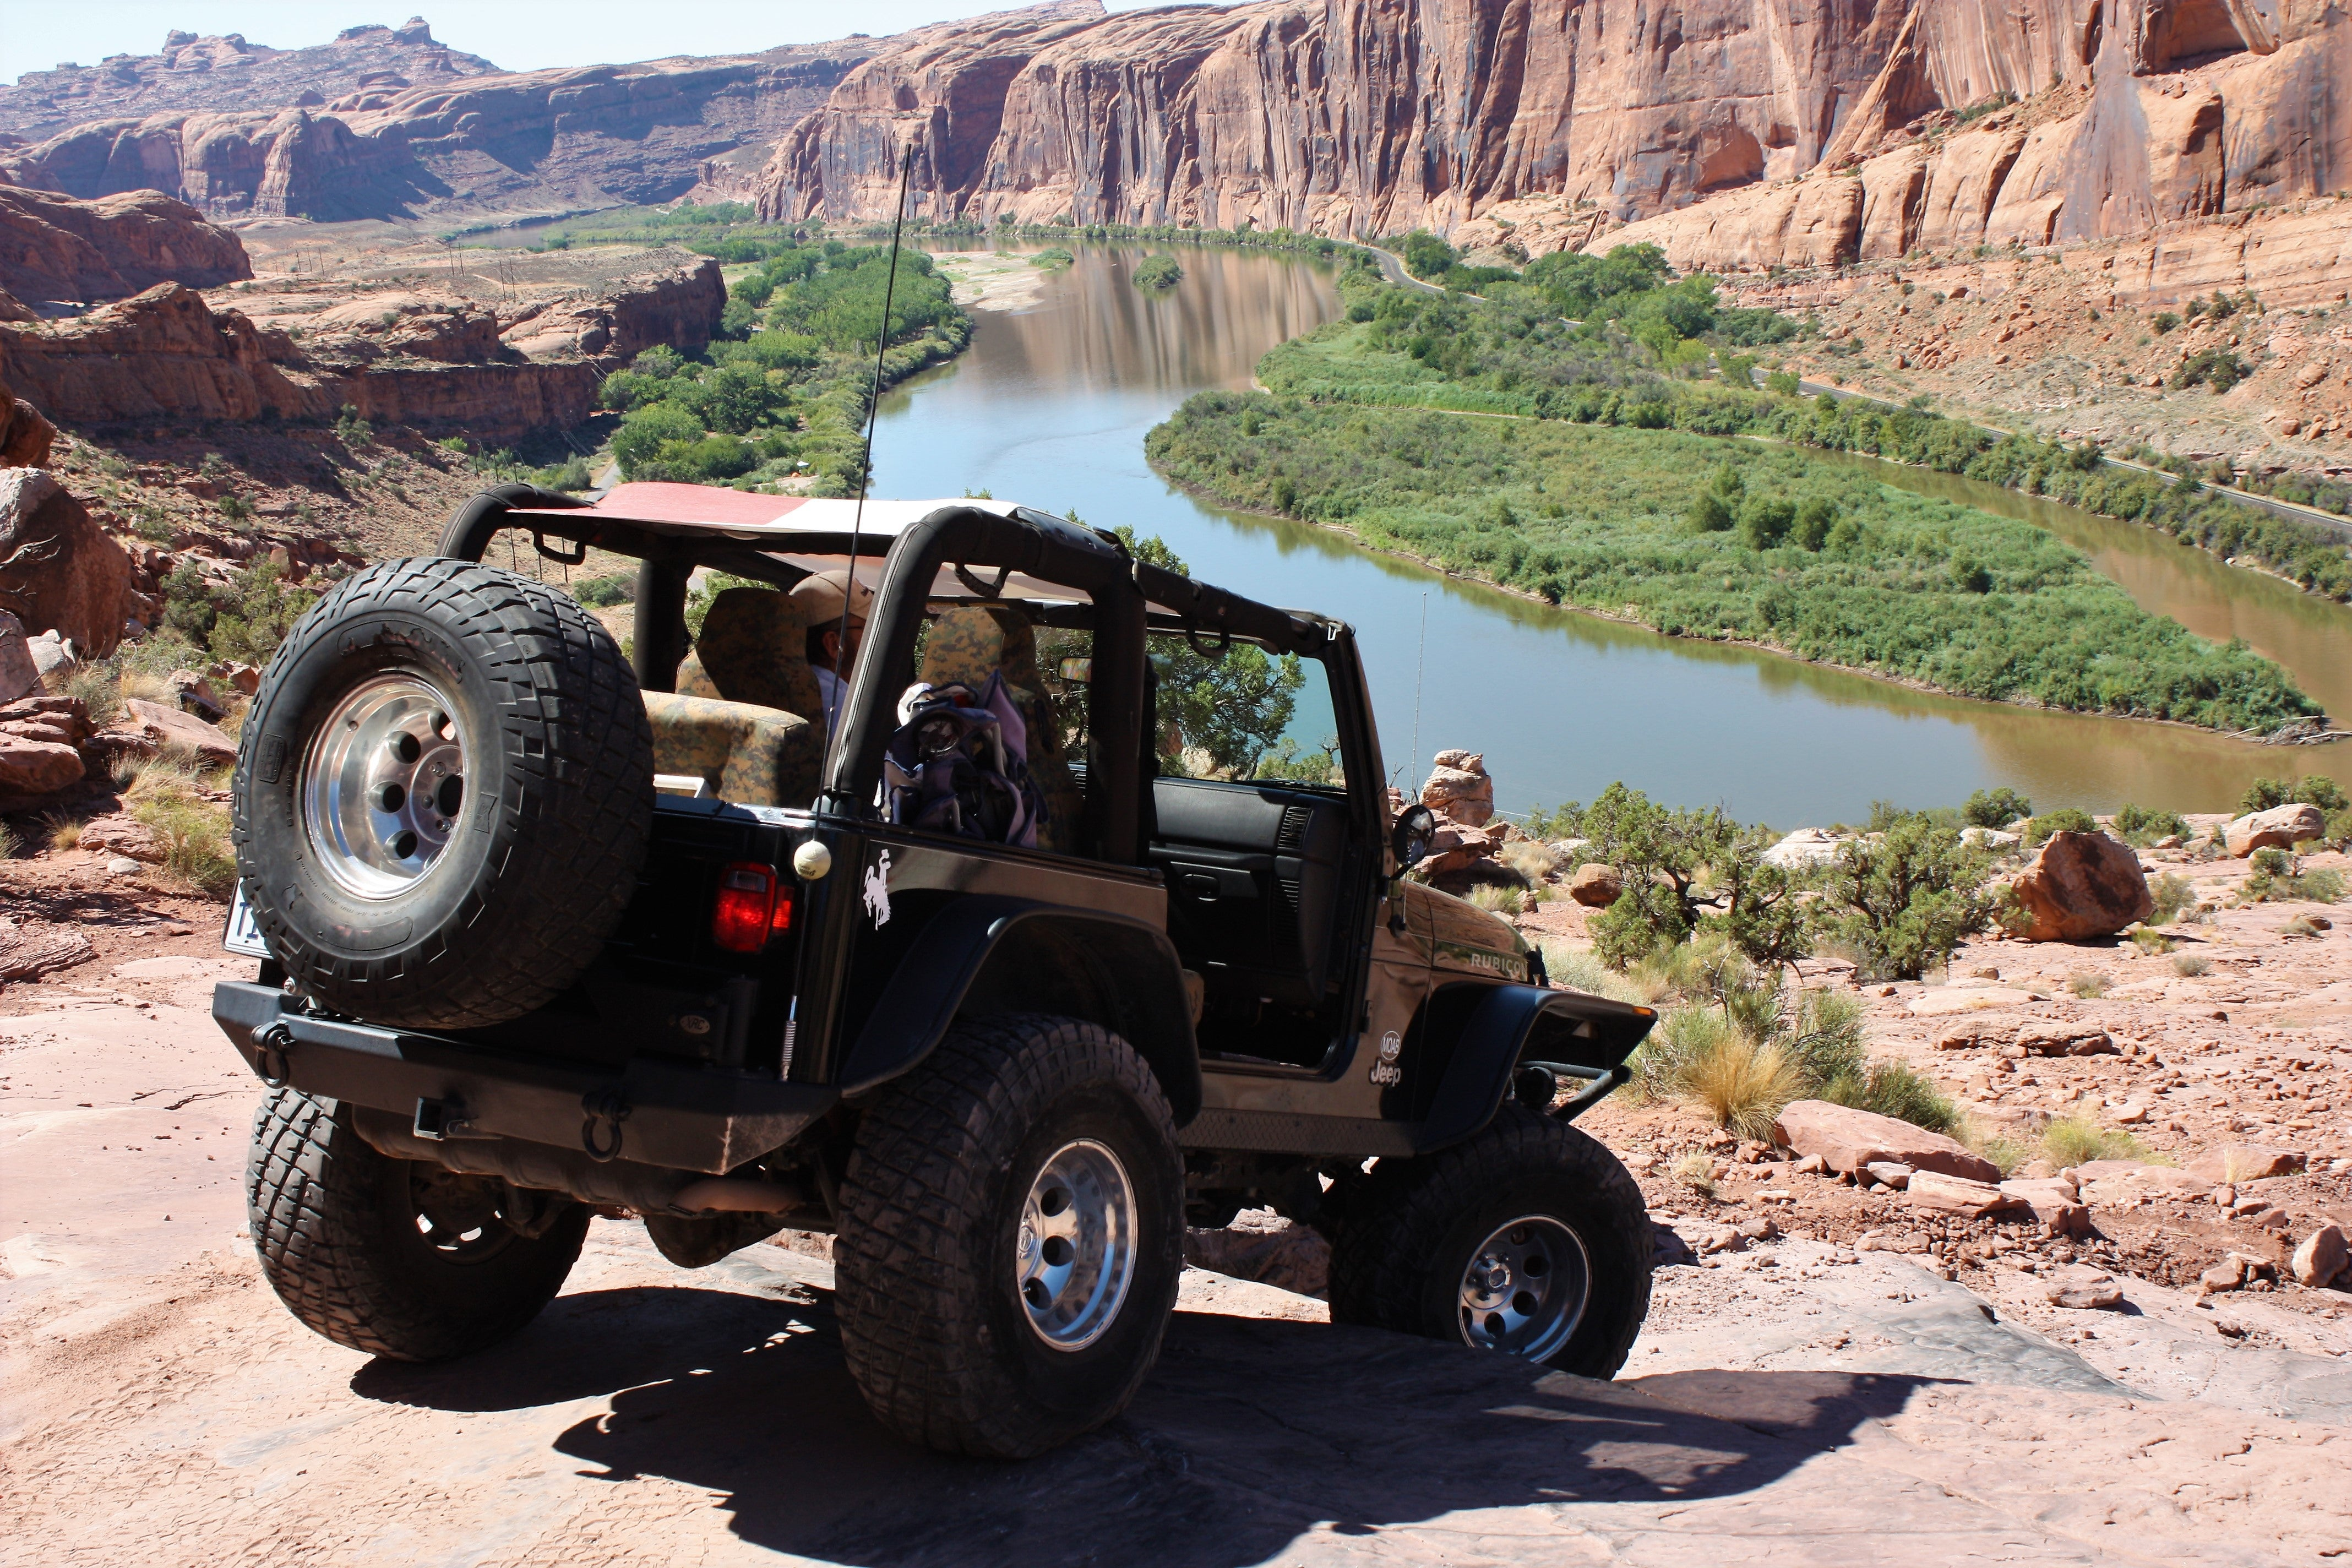 Jeep adventures in Moab, UT